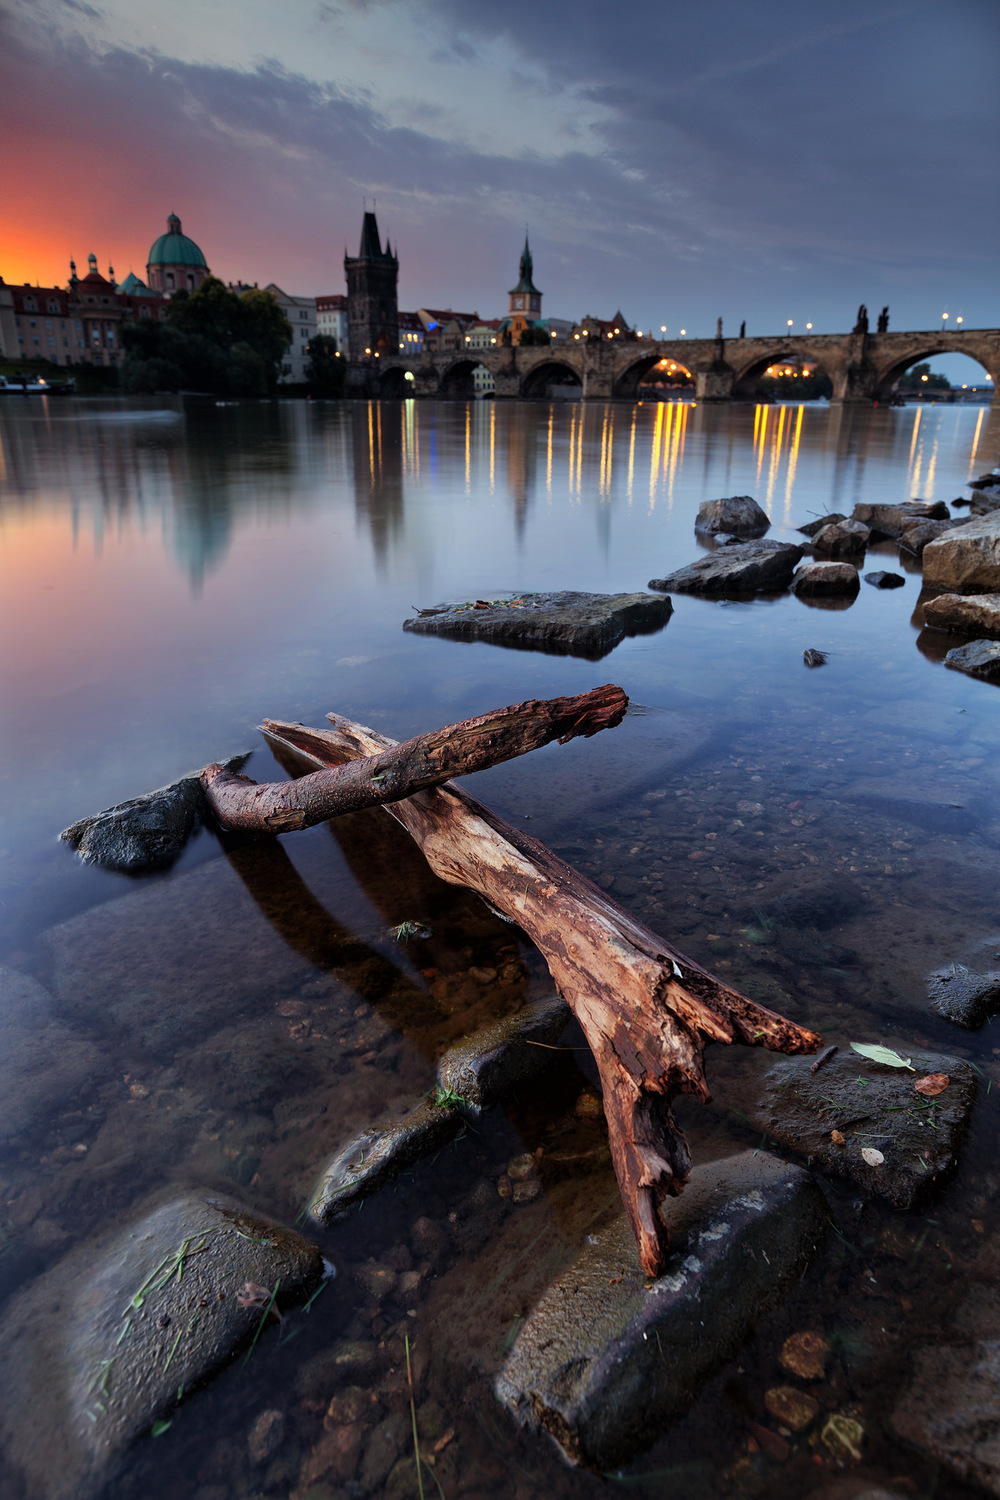 Morning-view-to-Charles-Bridge.jpg